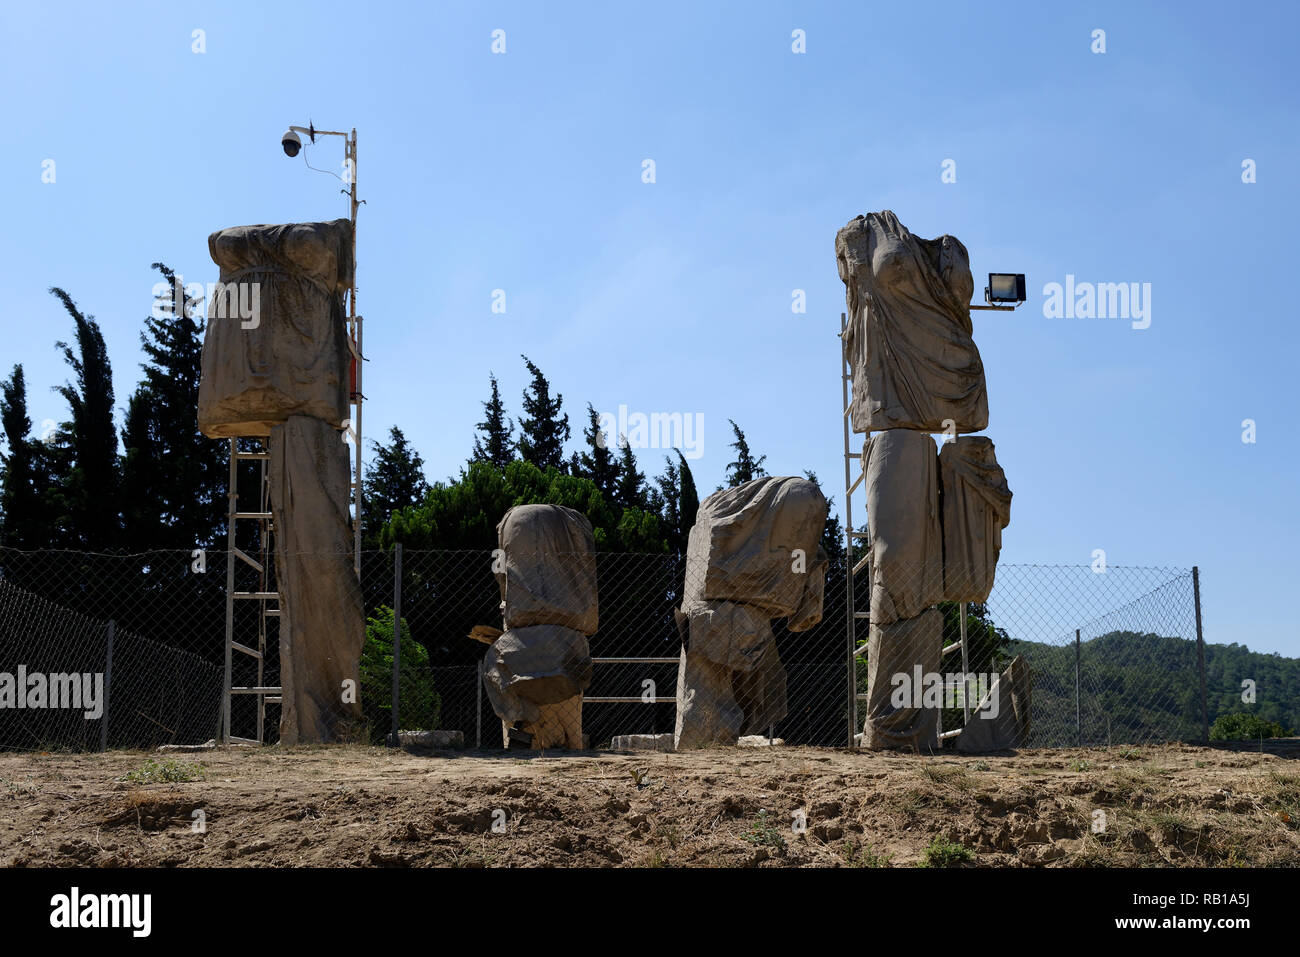 Fragments of 8-metre-high statues of Apollo, Artemis and Leto that once stood inside the Temple of Apollo of Claros, Turkey. - Stock Image